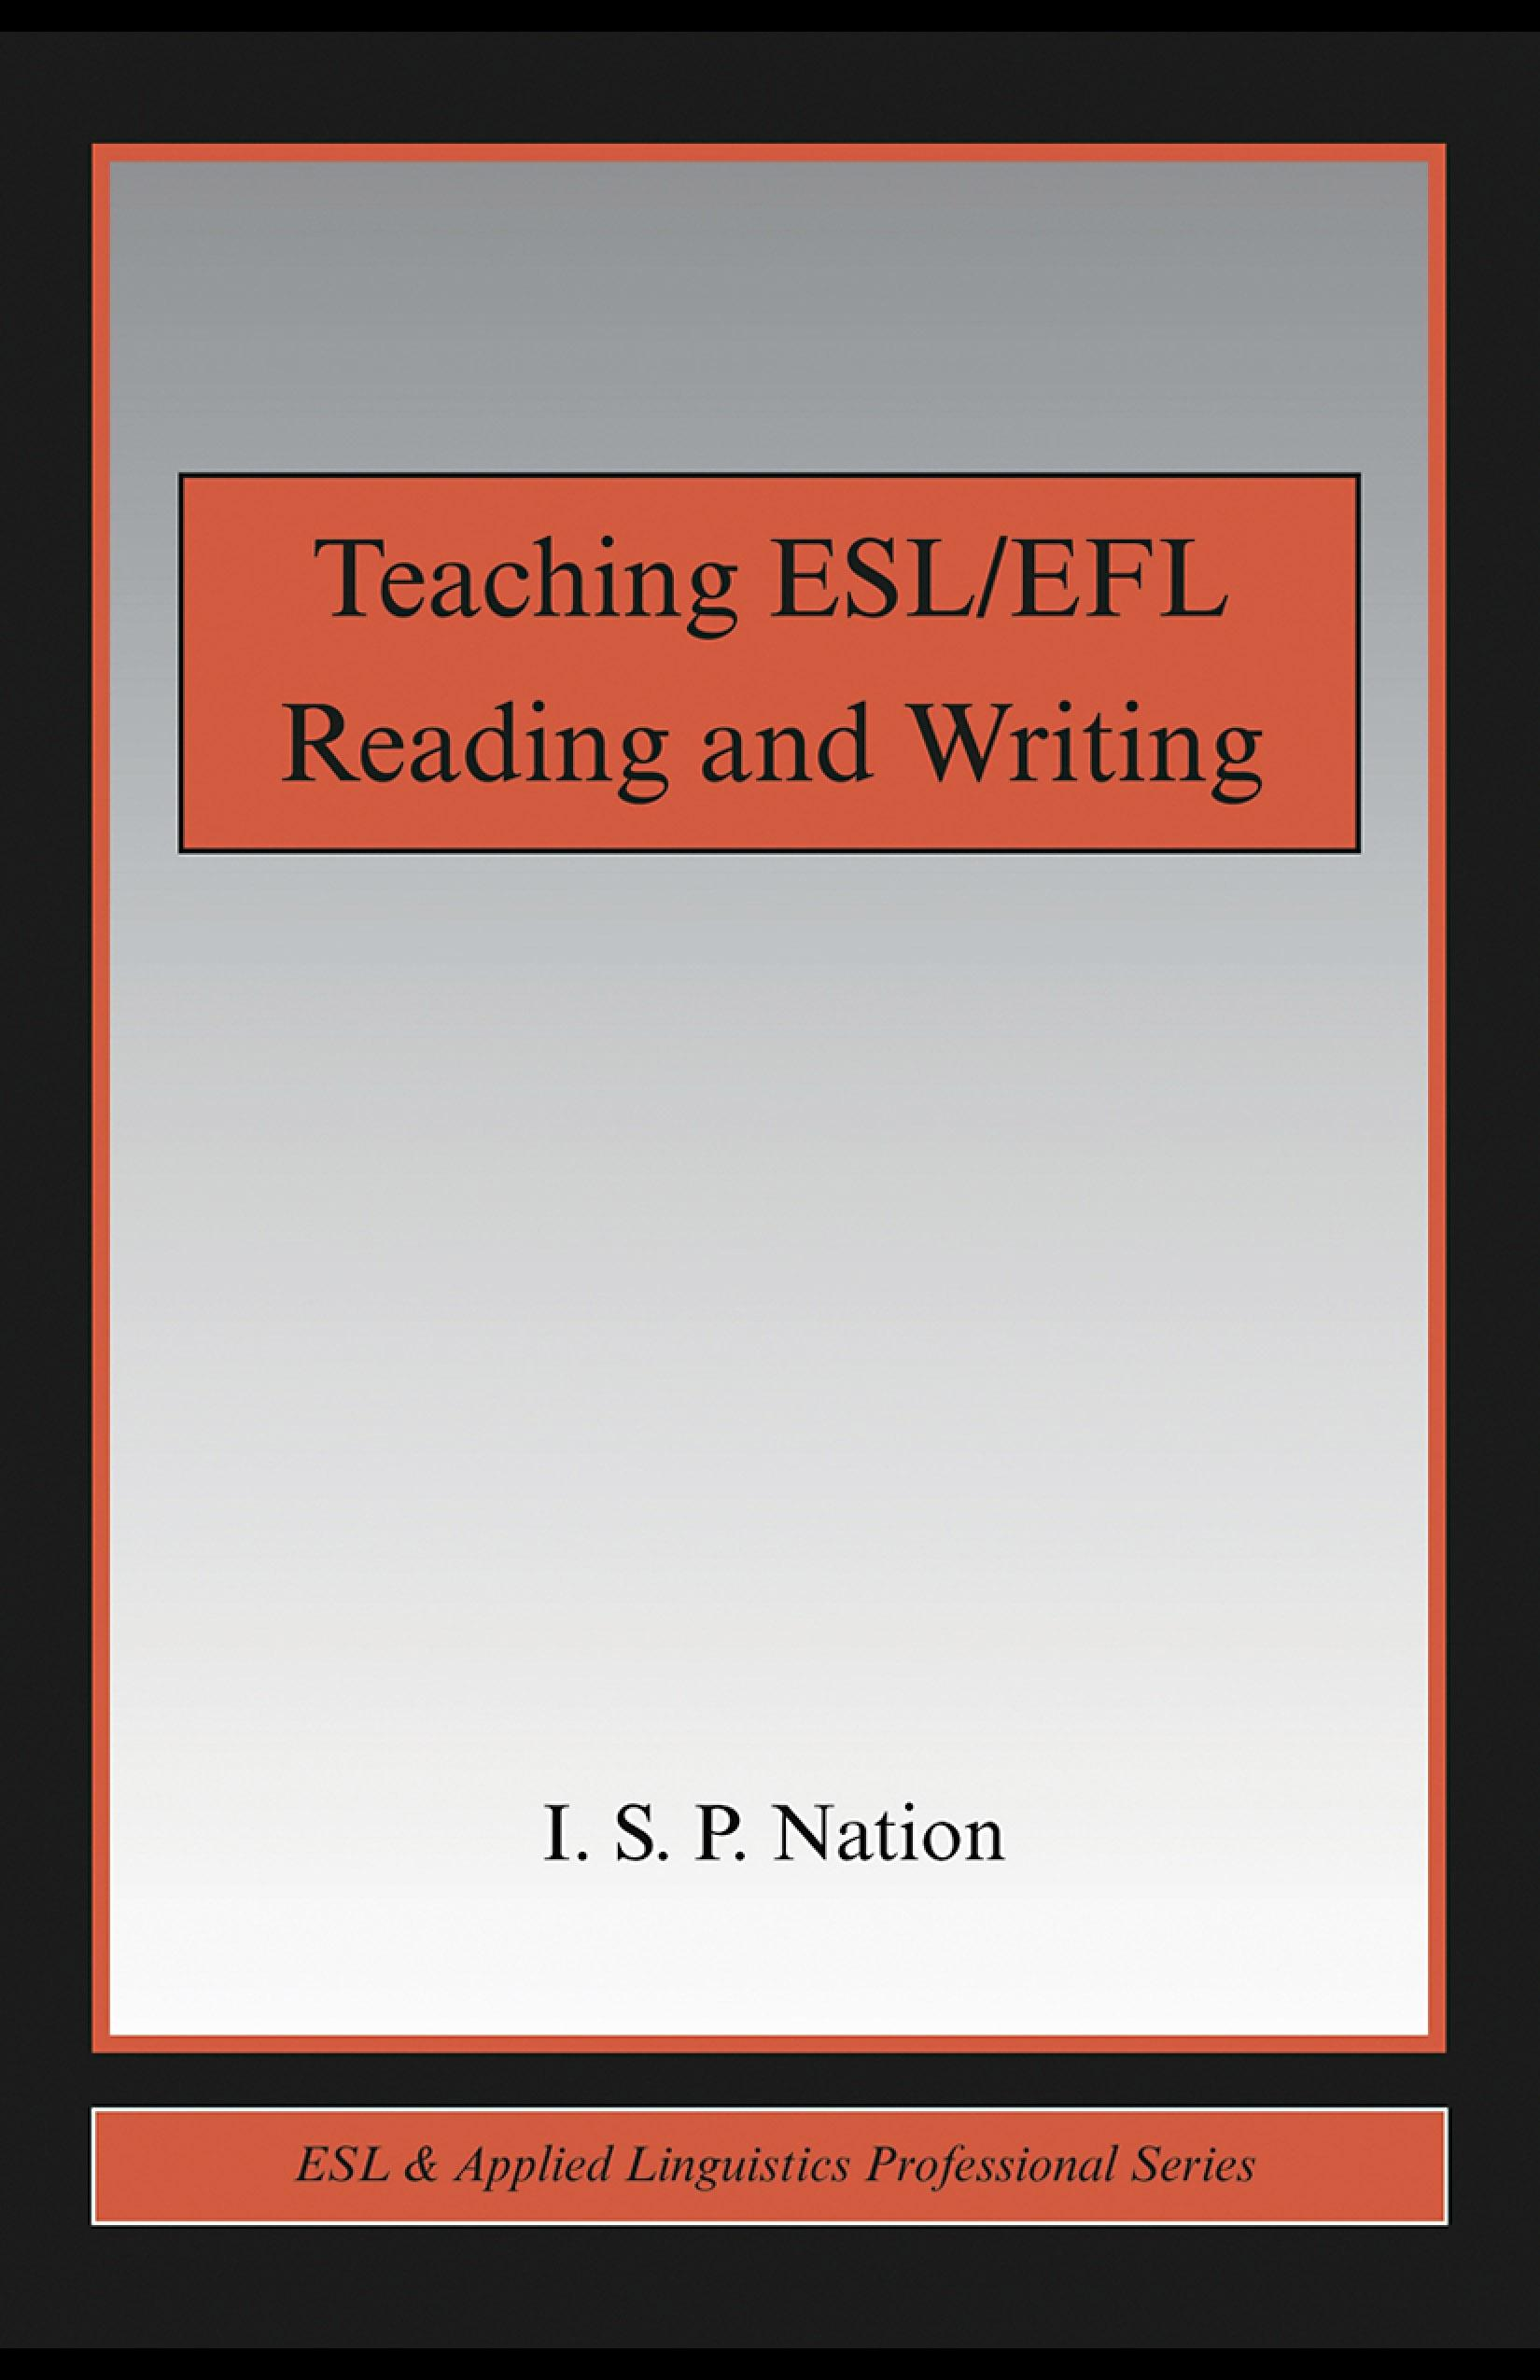 Teaching ESL/EFL Reading and Writing By: I.S.P. Nation